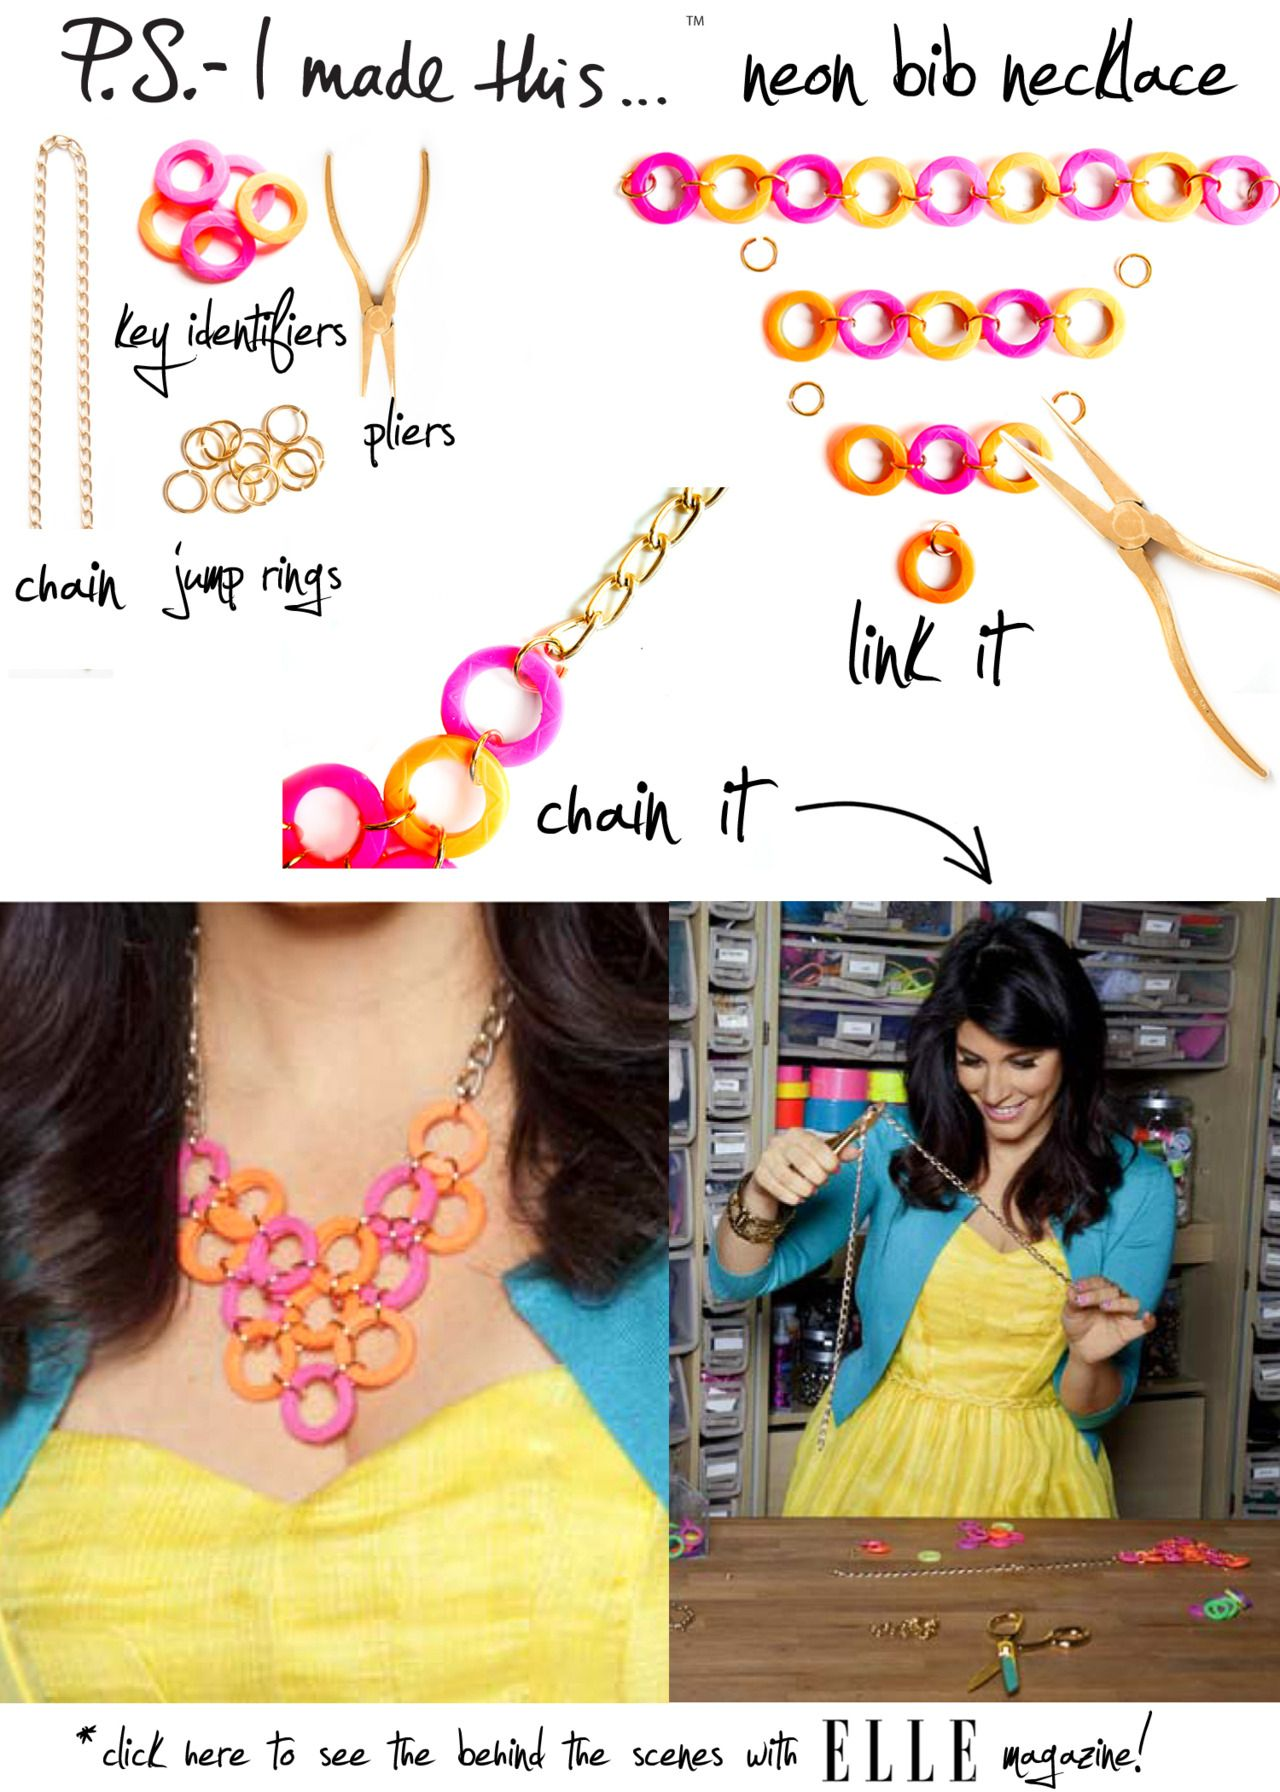 """It should be of no surprise, a pop of neon brings """"tiers"""" of joy to our eyes. A cascade of bold brights works day or night, and Summer's the ideal time to radiate shocking hues. Designers like Tom Binns and Oscar de la Renta have shown us that jewels are more chic with a colorful streak…unlock your own inner glow with this DIY neck candy!  To create, hit up your local hardware store for these colorful key identifiers. Layout a pattern and secure each circle with jump ring"""